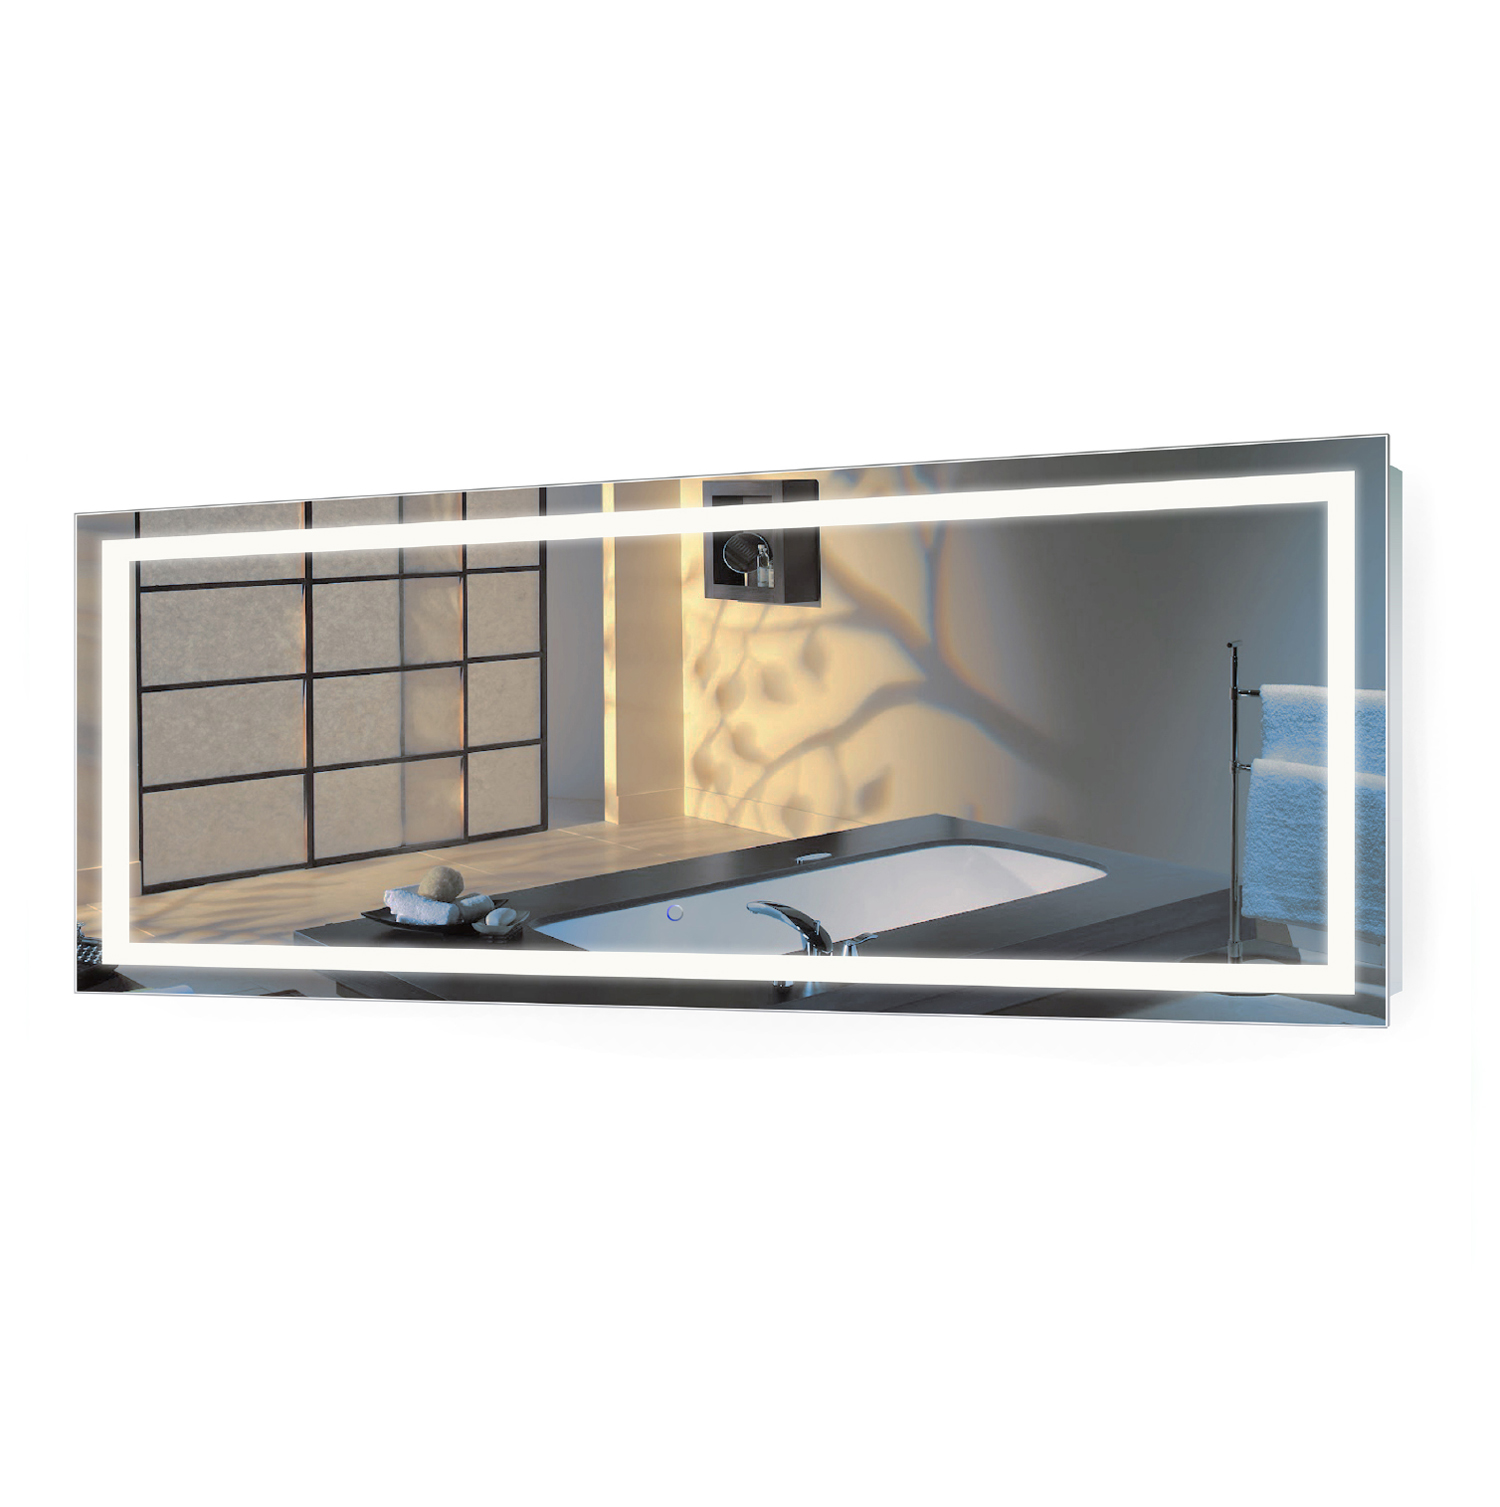 Icon 72″ X 30″ LED Bathroom Mirror w/ Dimmer & Defogger | Large Lighted Vanity Mirror